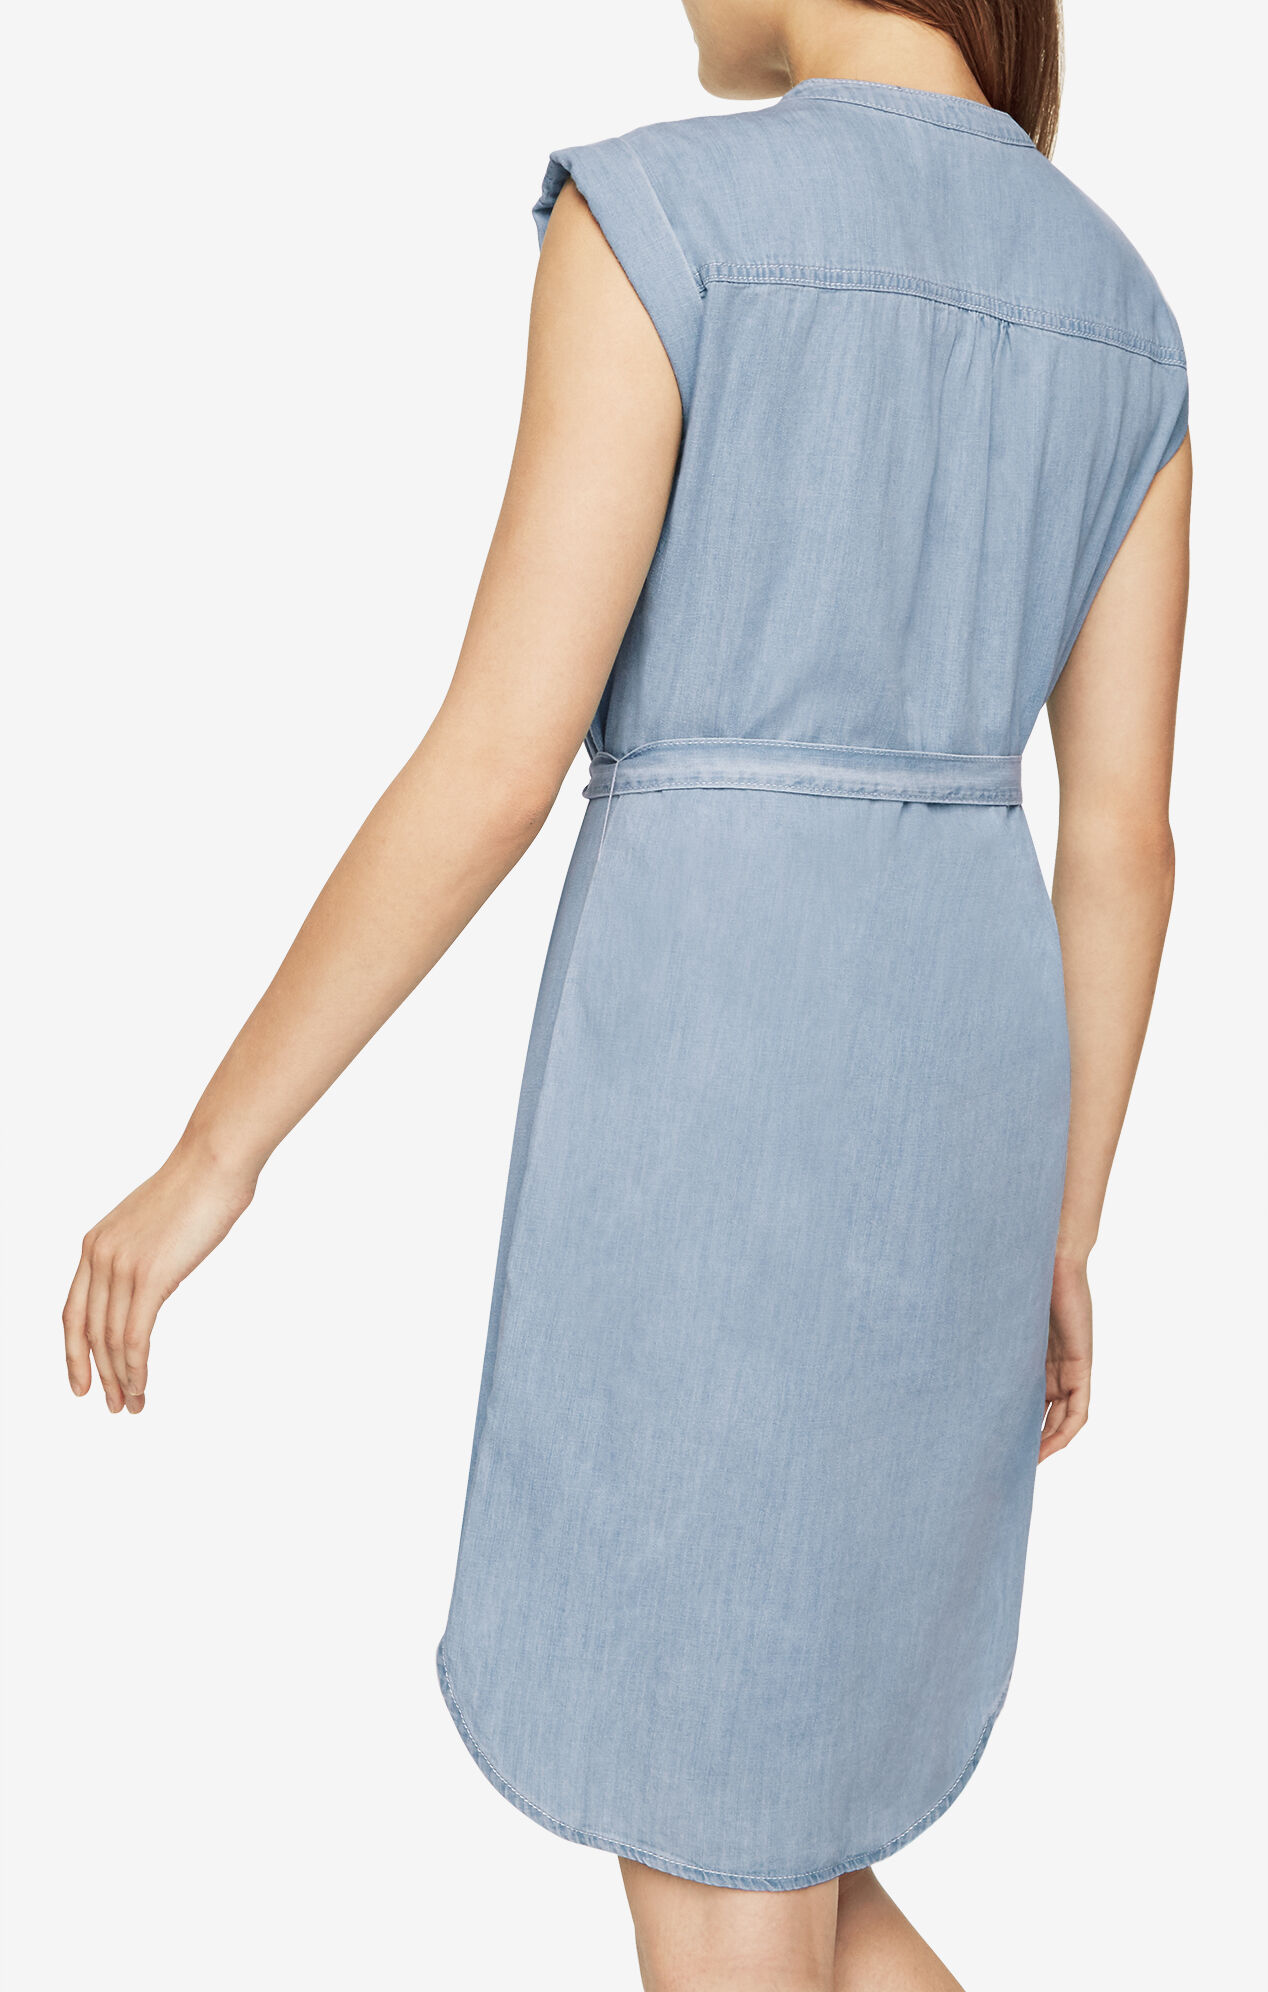 Kayli Denim Dress